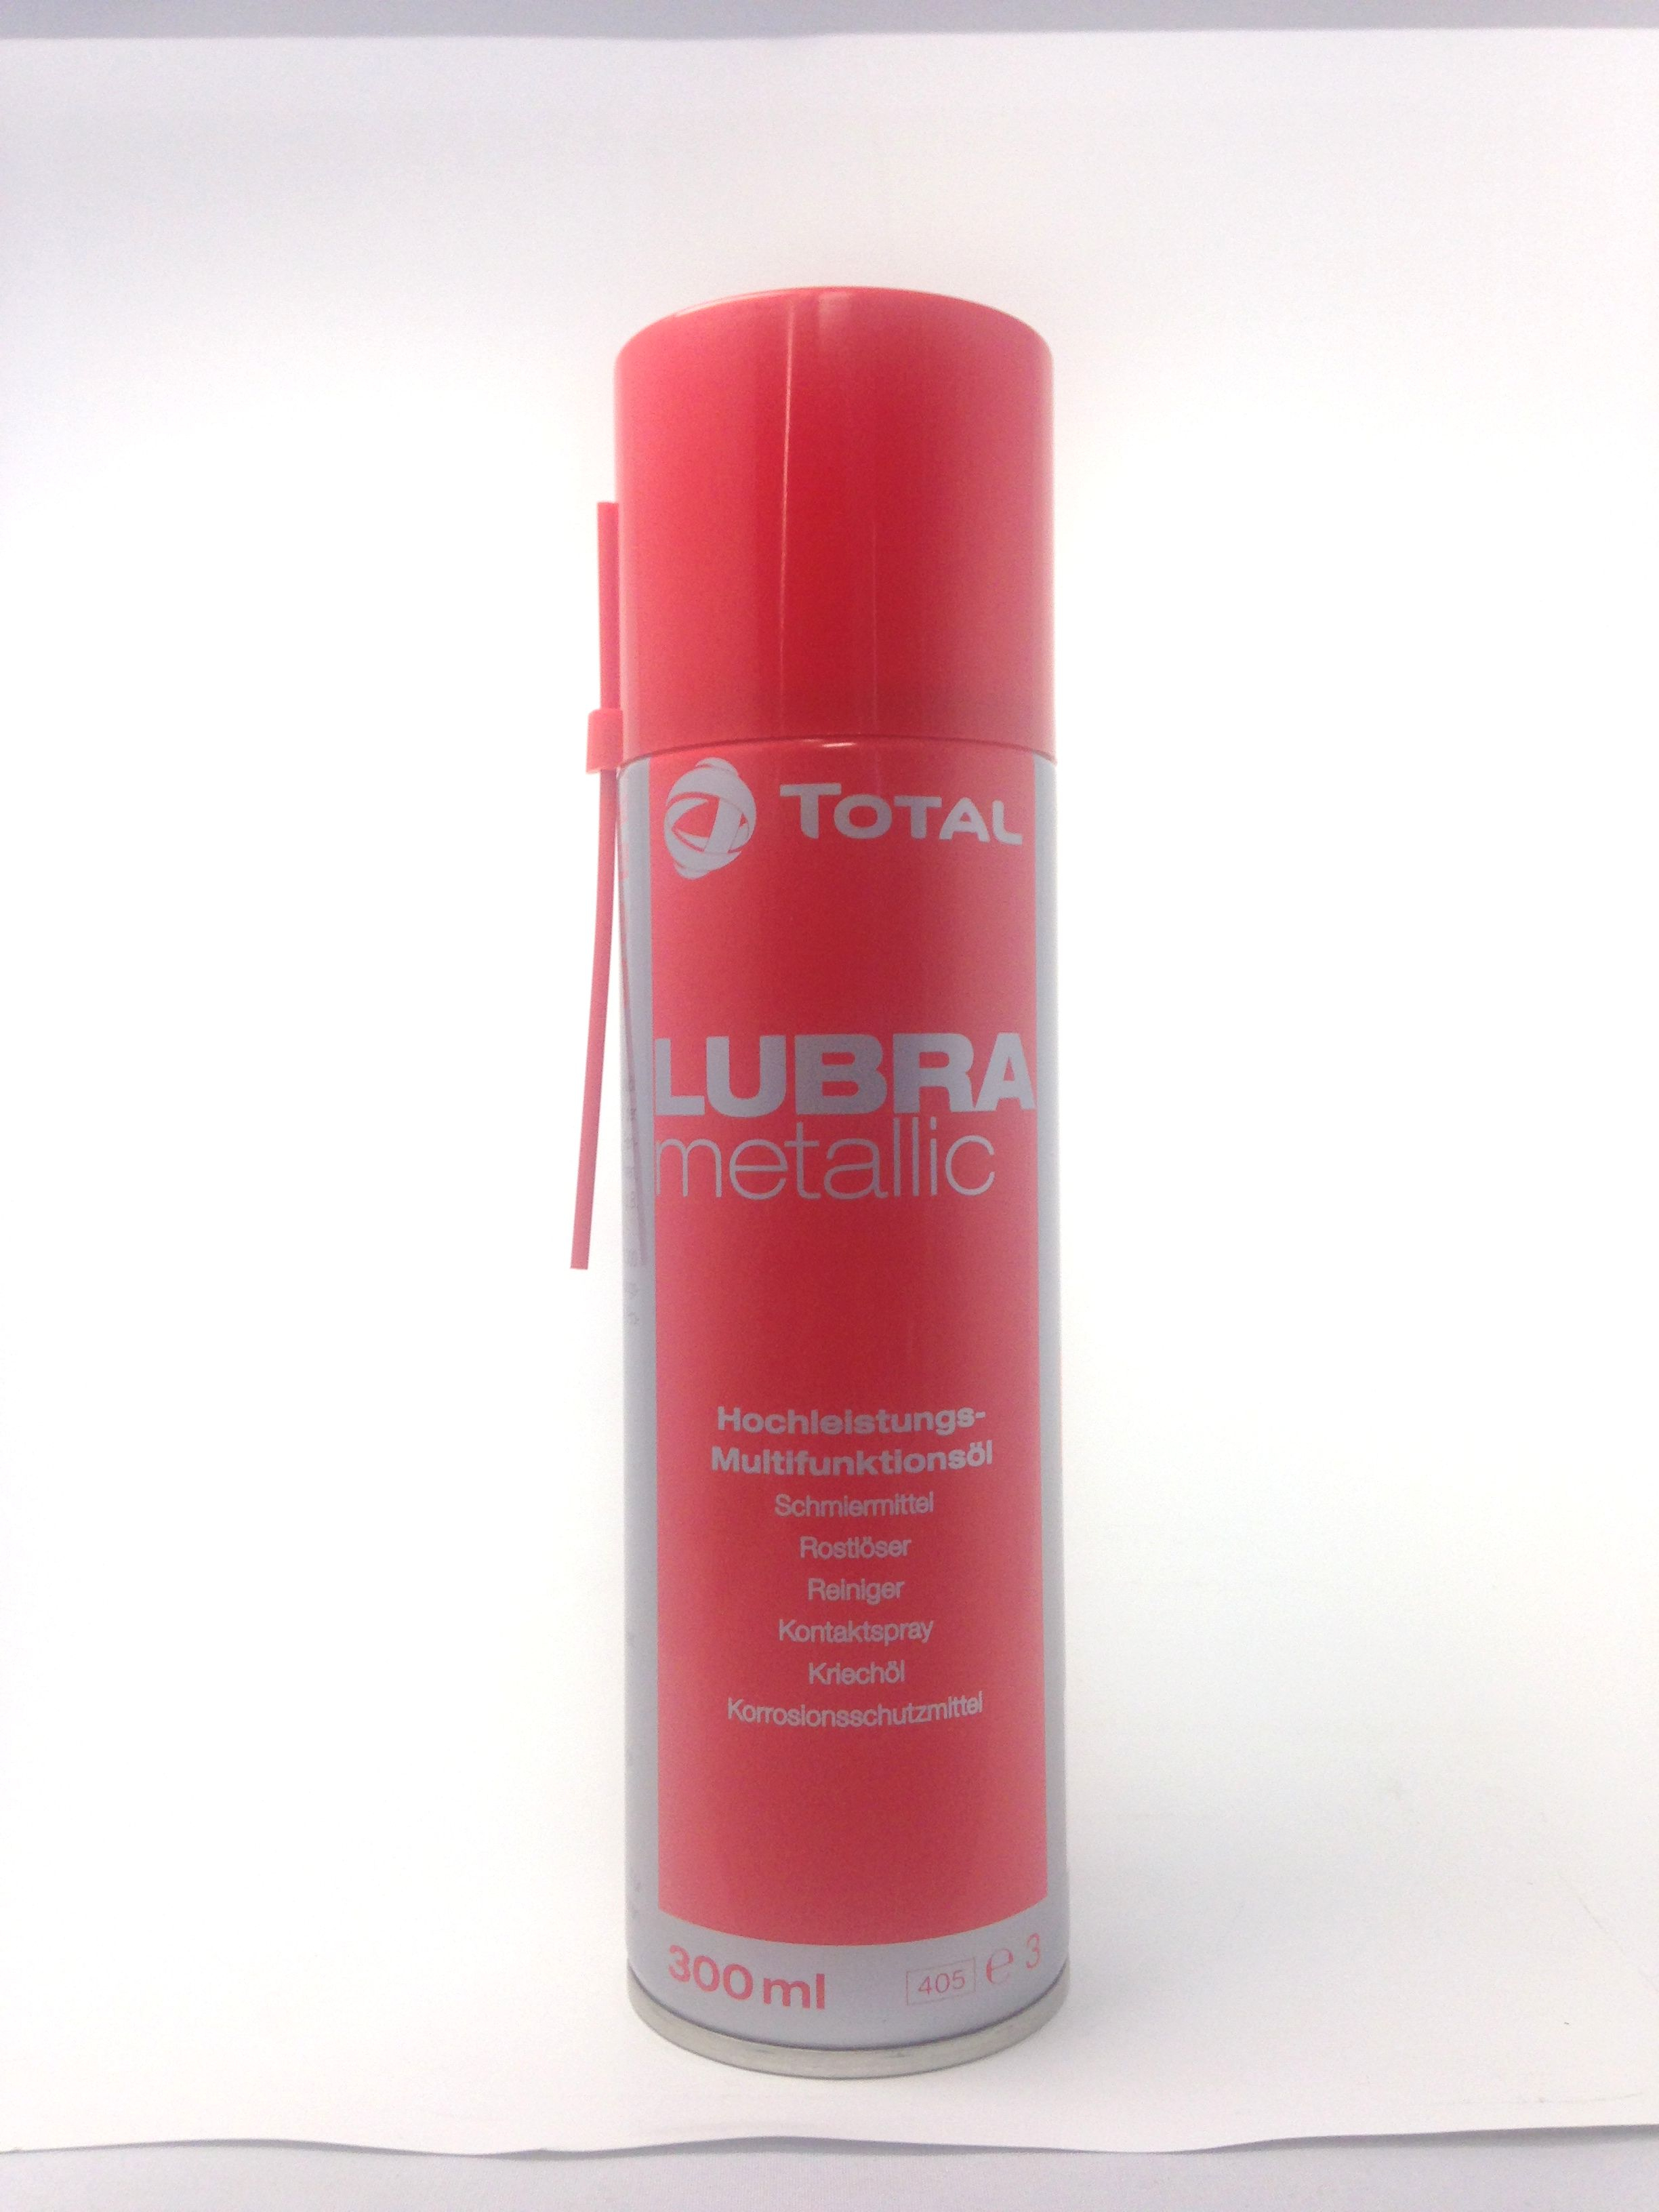 300 ml TOTAL LUBRA metallic - Spray Multifunktionsöl